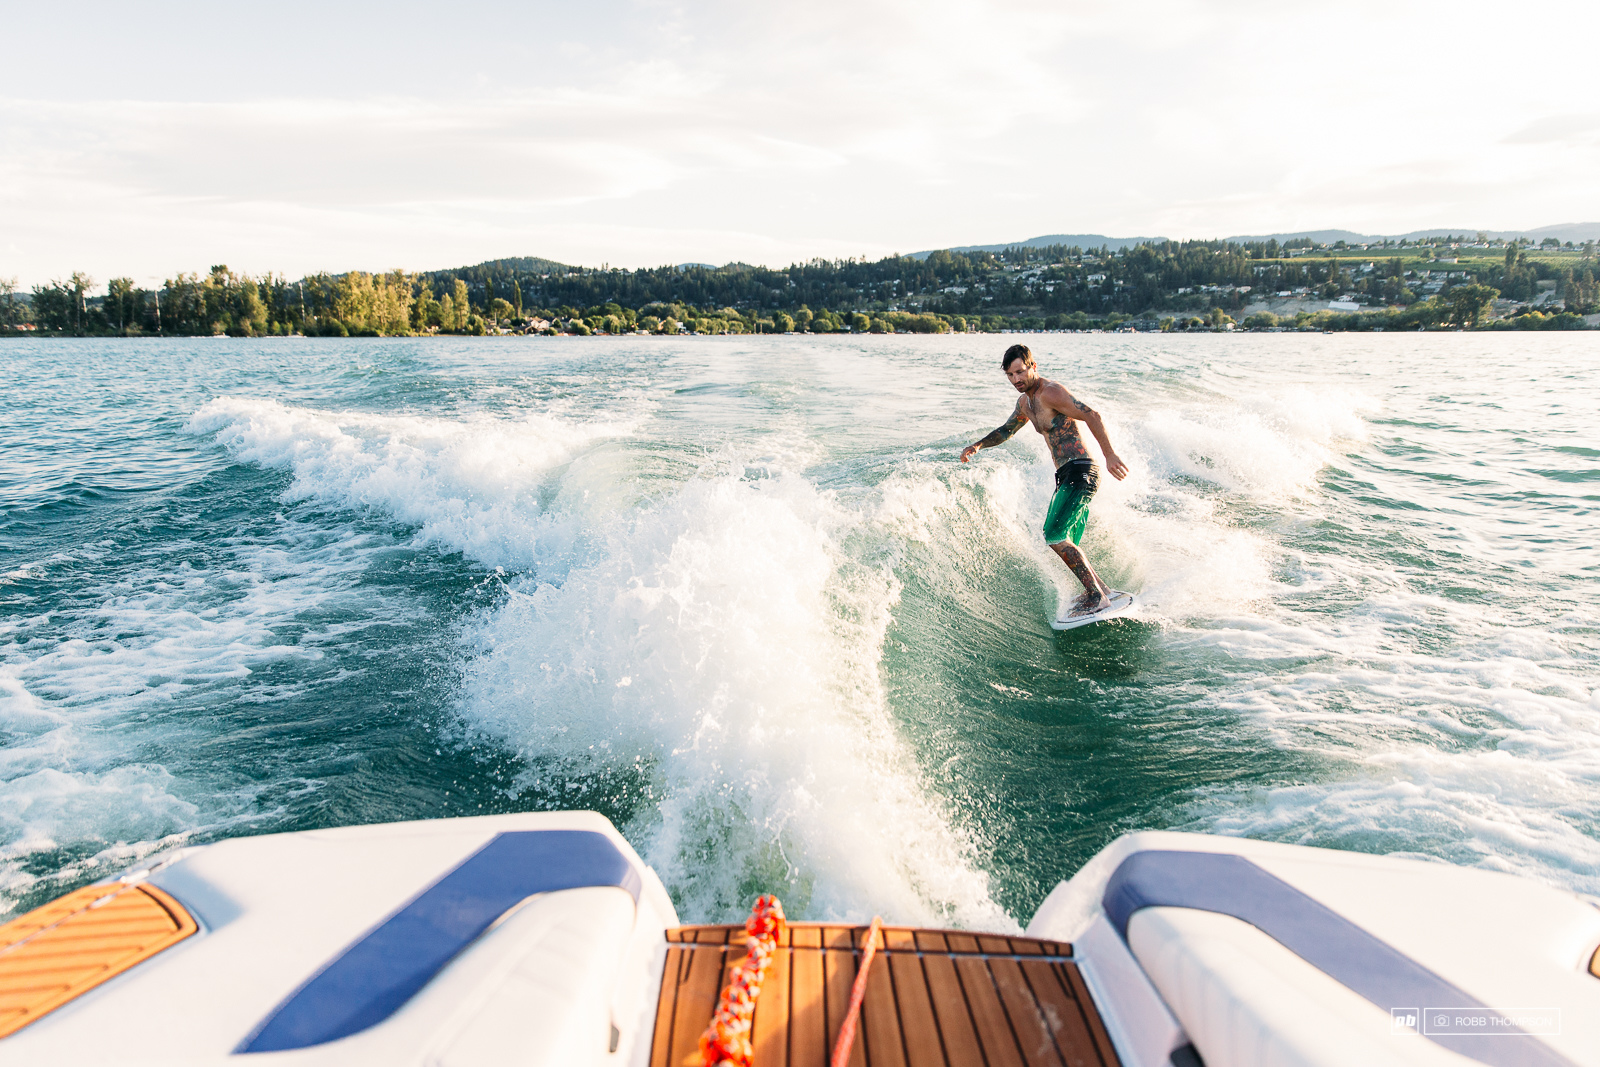 Brad shows us what wake sufing is supposed to look like